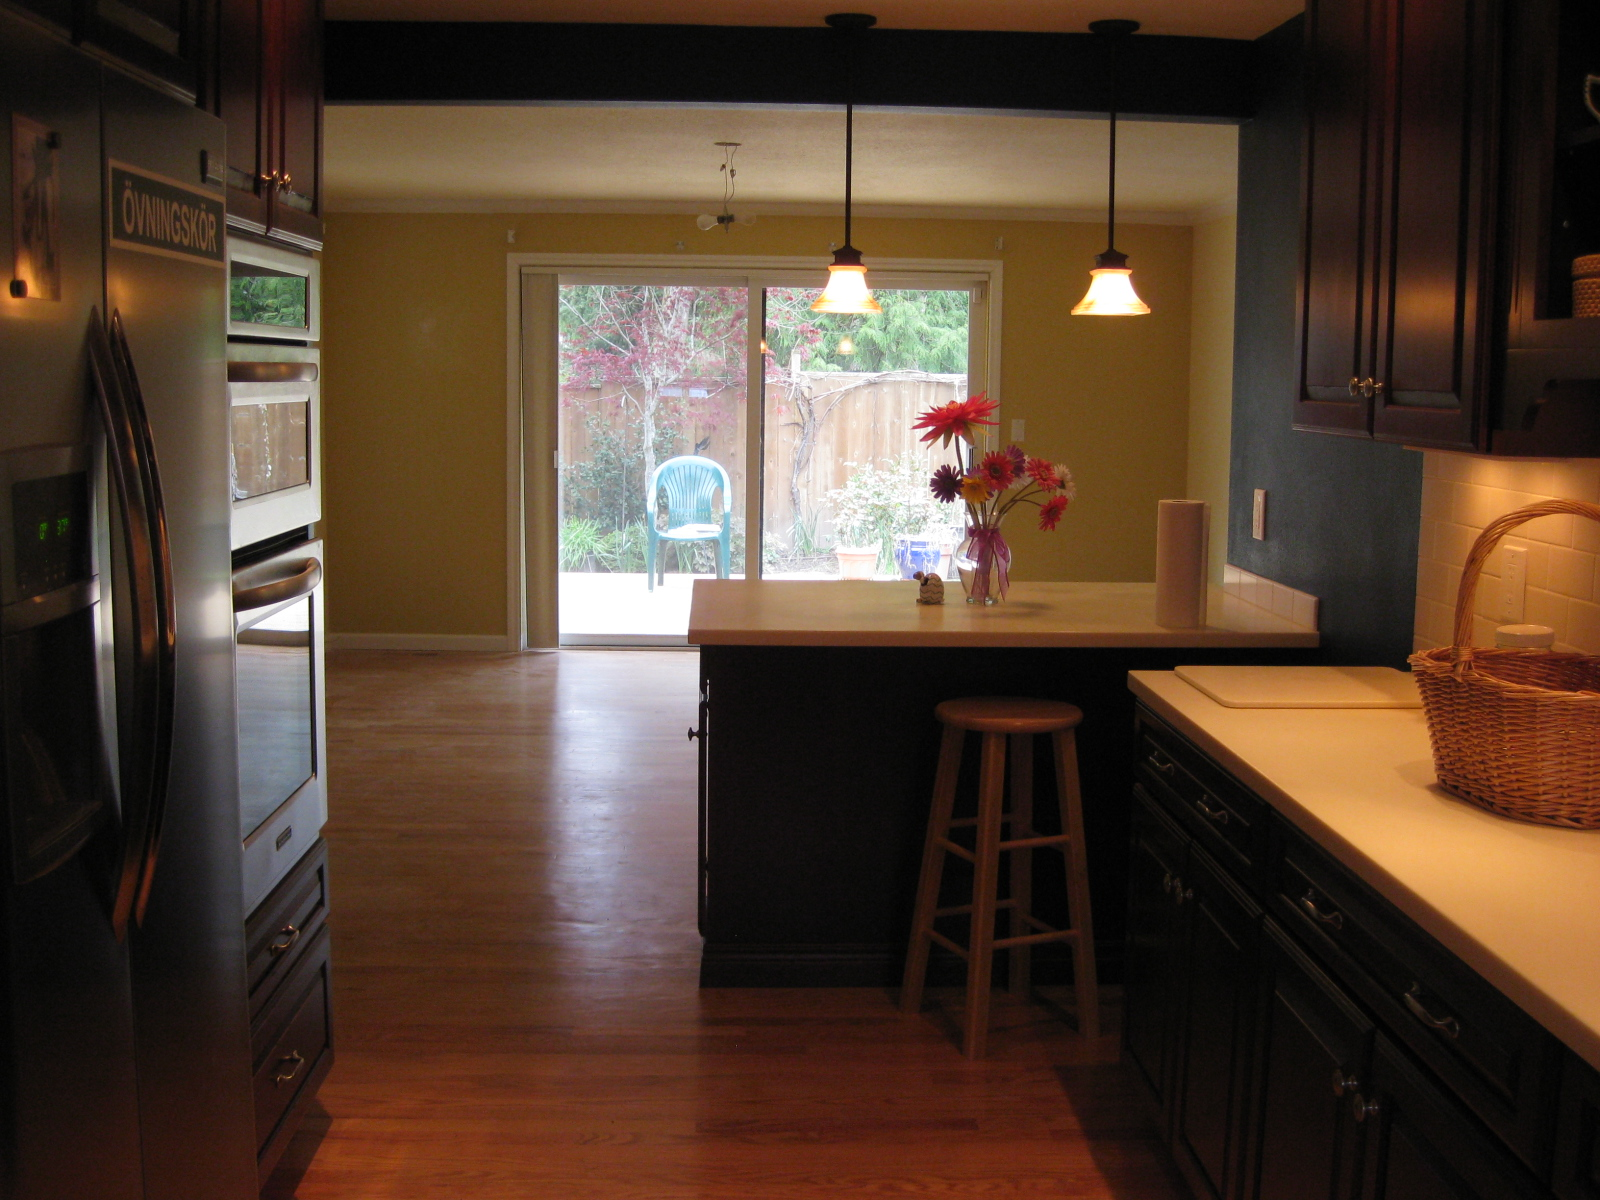 Chew on the Things of Life: 2010 Kitchen remodel